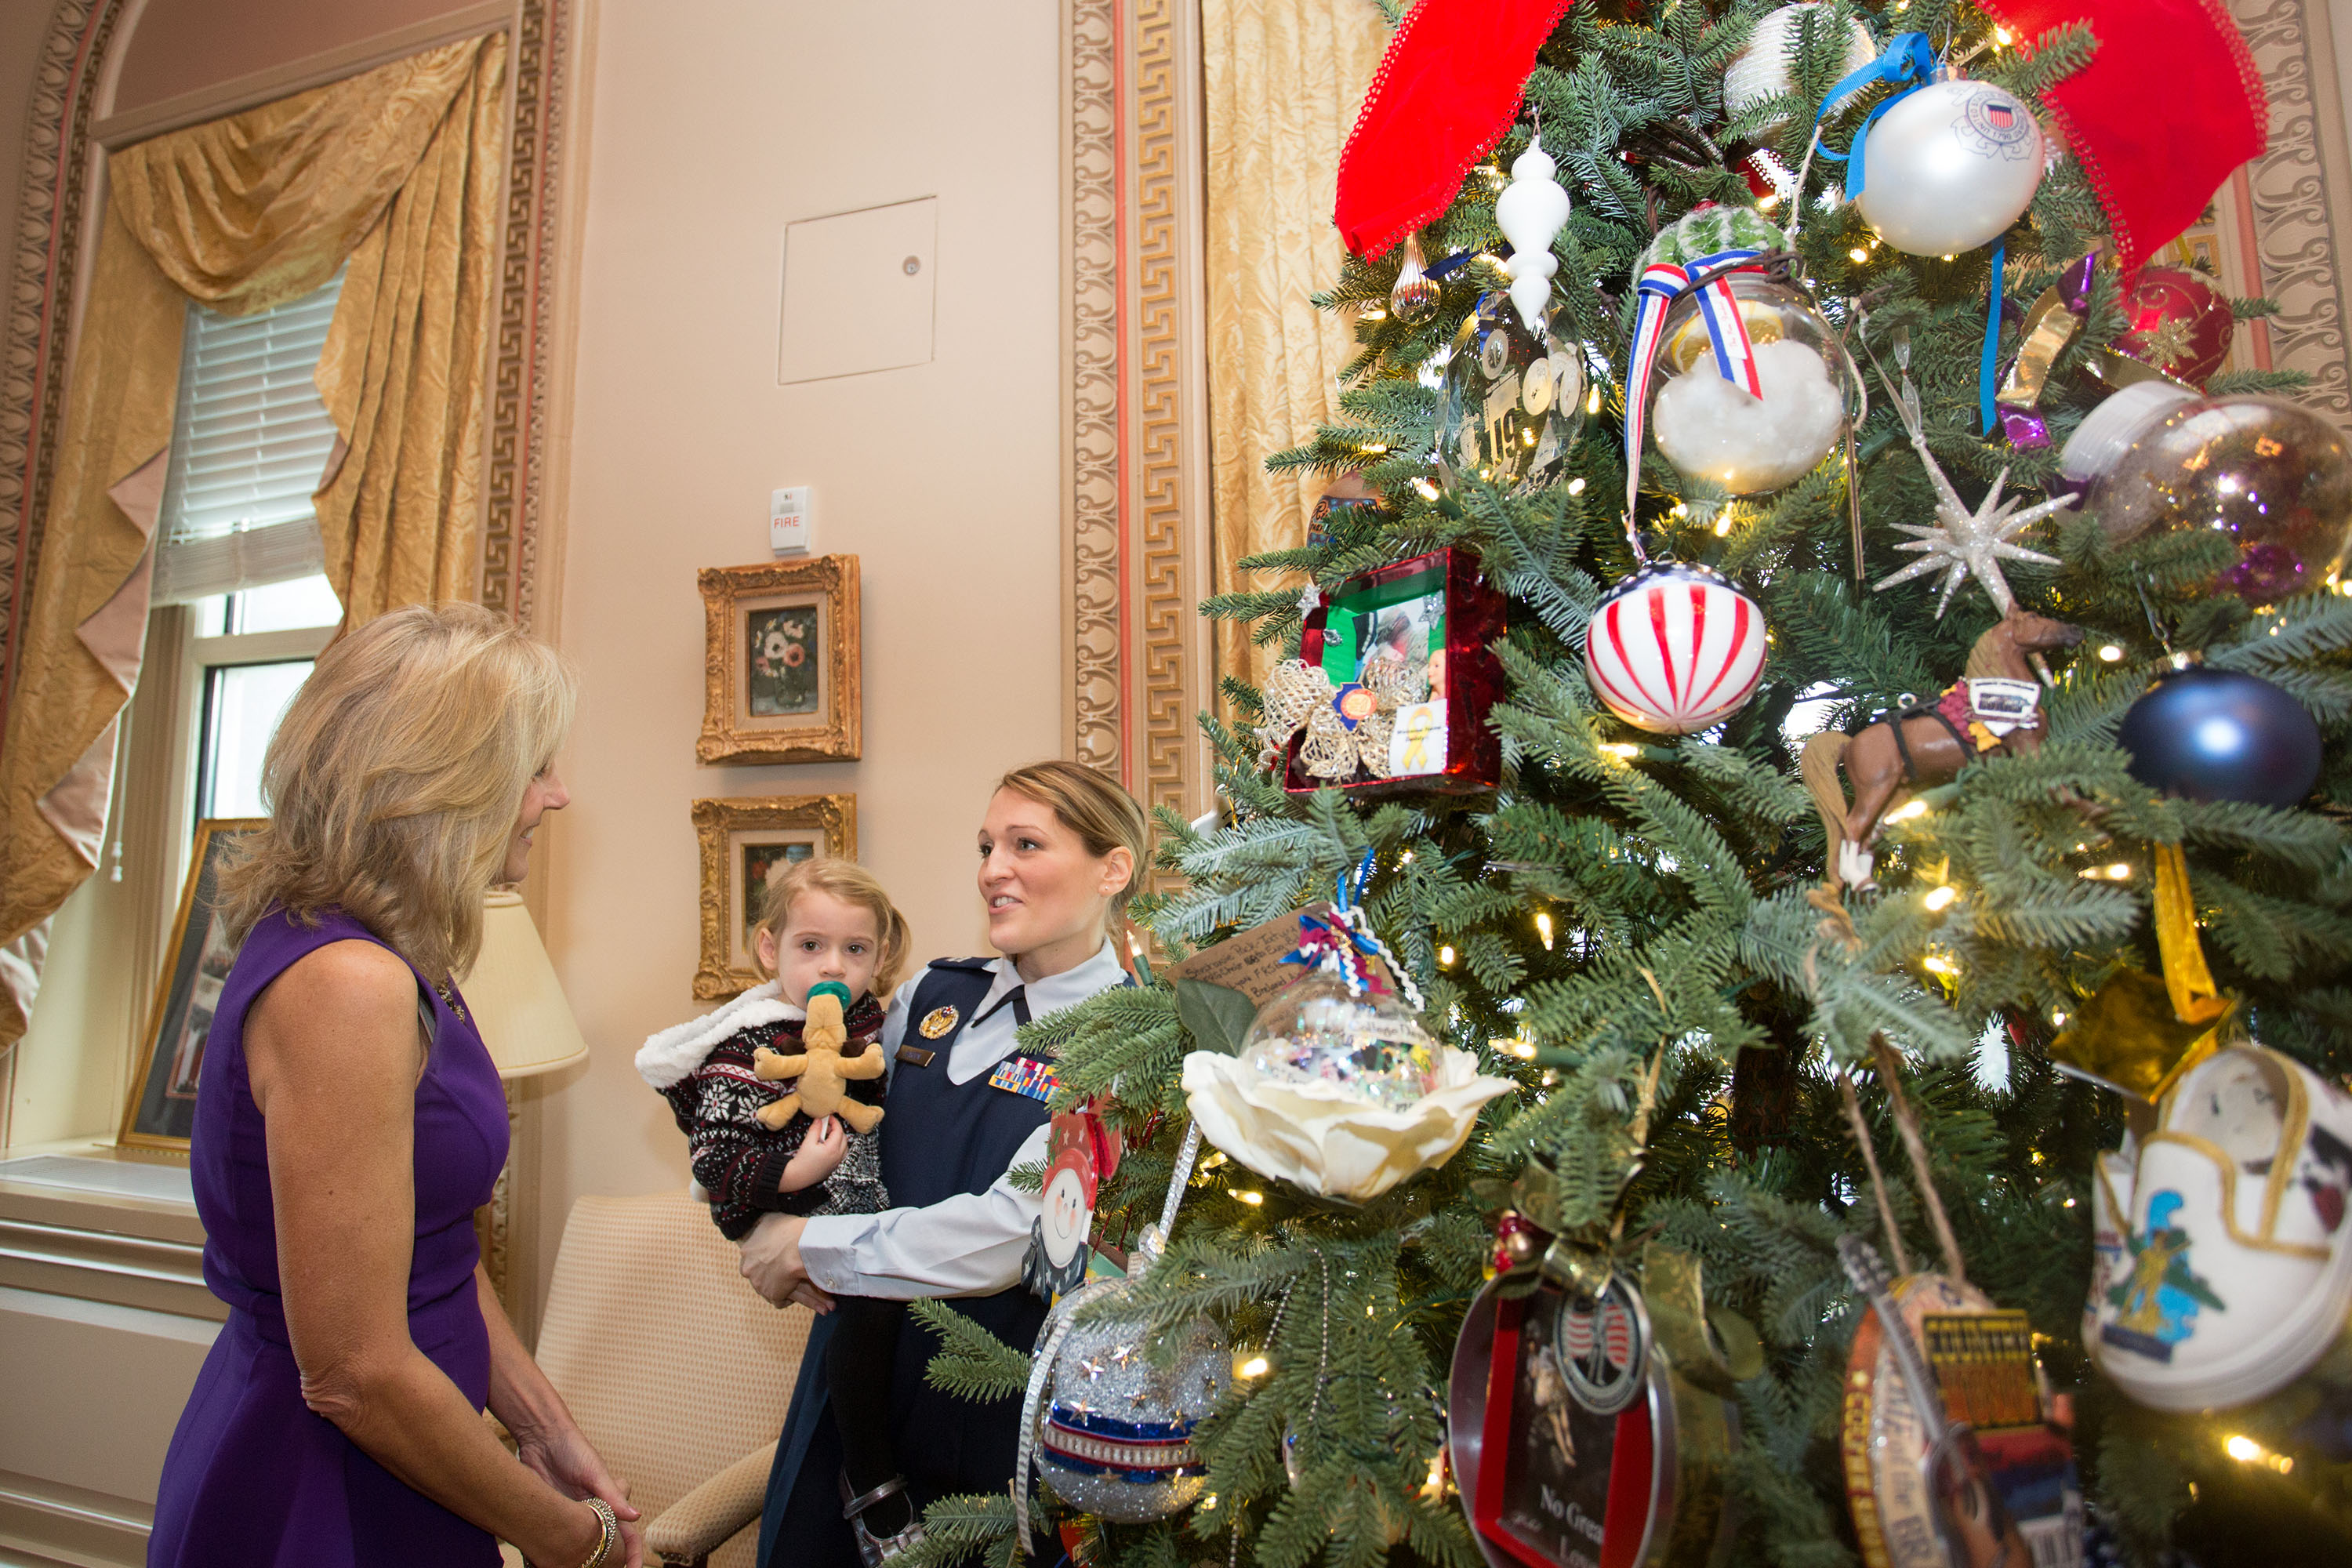 Dr. Jill Biden hosts a National Guard Christmas Tree dedication in her office in the Eisenhower Executive Office Building, in Washington, D.C., Dec. 9, 2013. (Official White House Photo by David Lienemann)